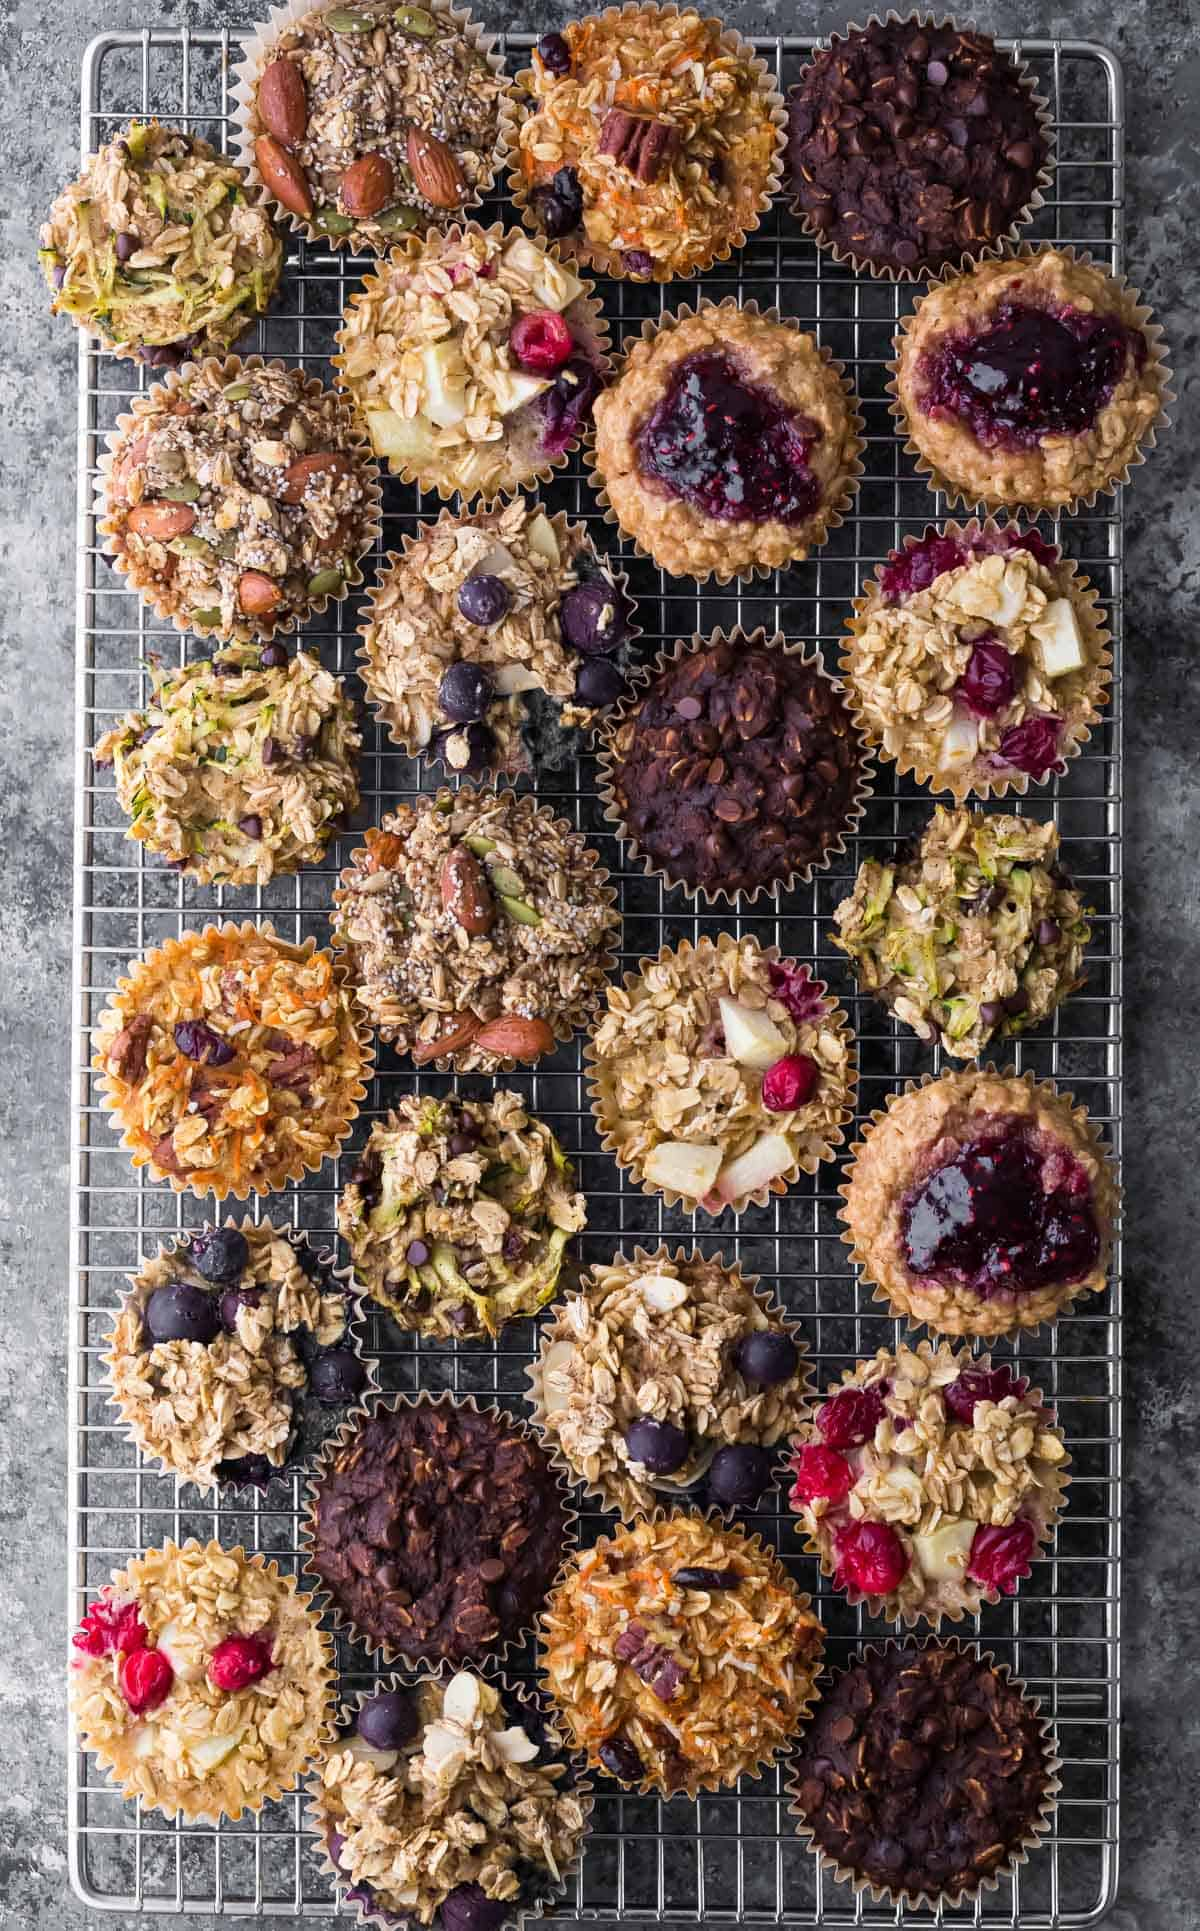 Easy baked oatmeal in muffin tin are a delicious meal prep breakfast or snack on the go. They are easily made gluten-free and vegan, are freezer-friendly, and are customized with seven different flavor variations so you'll never get bored! #sweetpeasandsaffron #mealprep #oatmeal #muffin